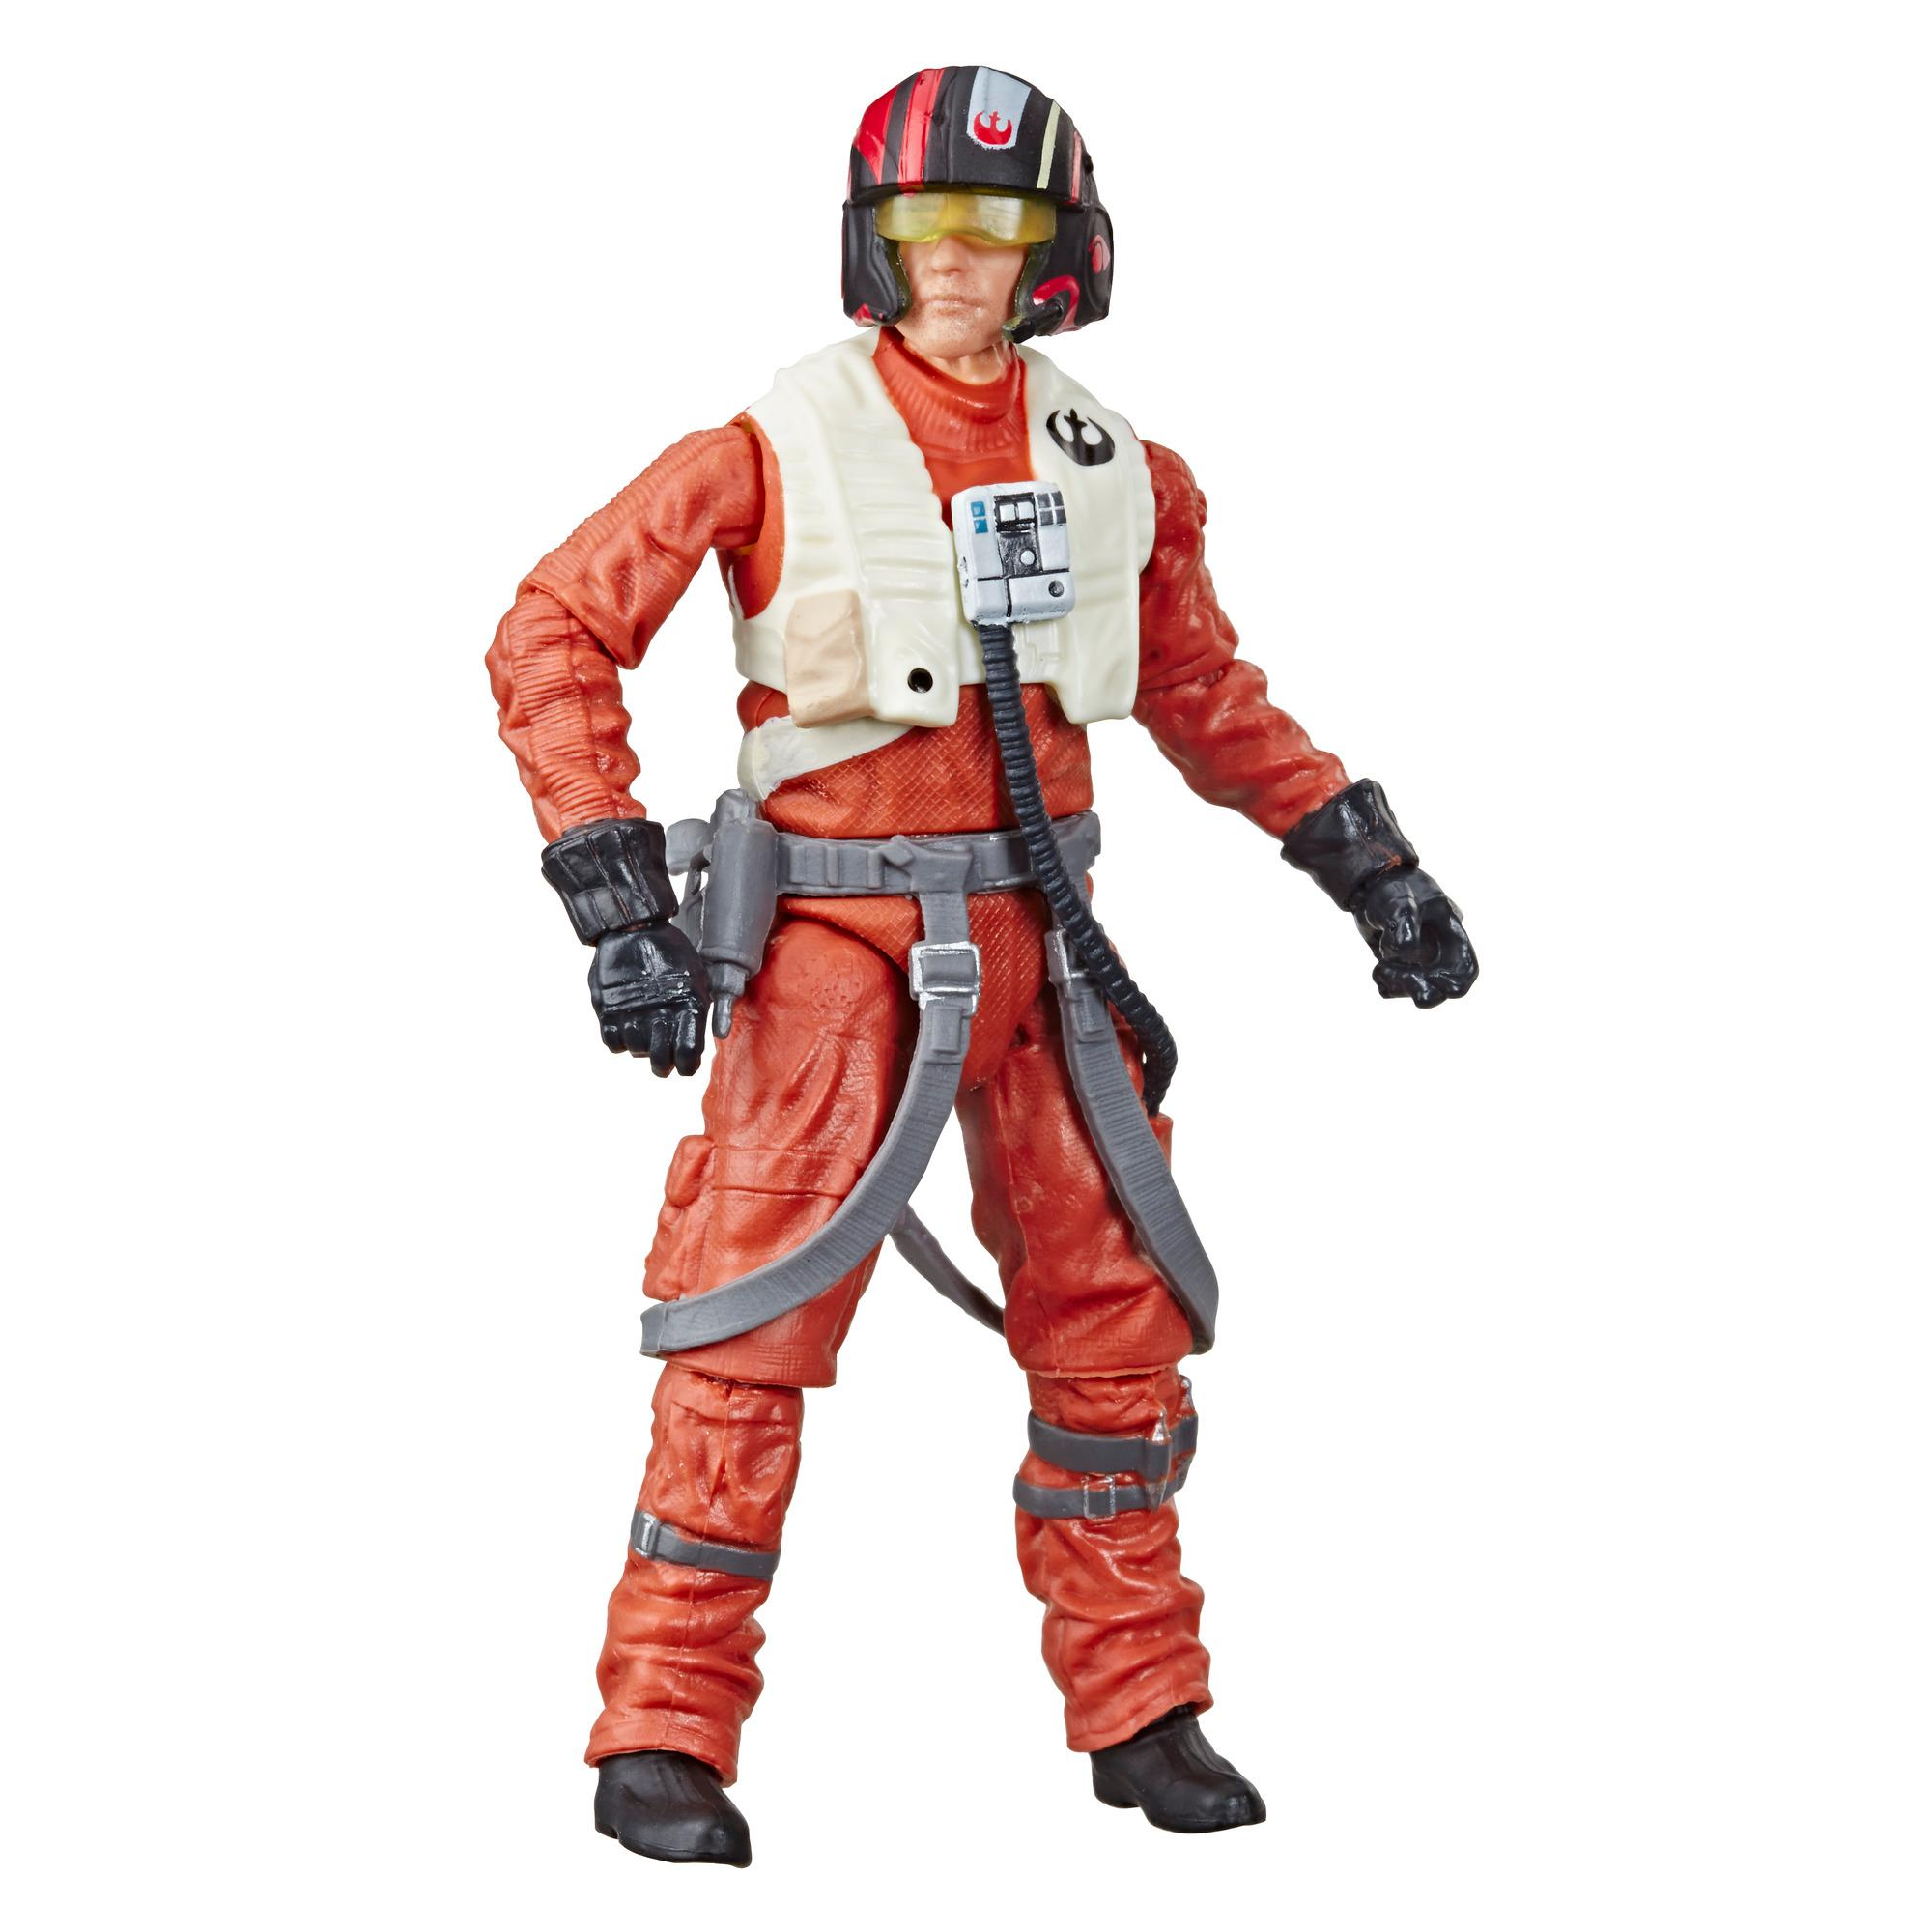 Star Wars The Vintage Collection Star Wars: The Force Awakens Poe Dameron Toy, 3.75-inch Scale Figure, Ages 4 and Up